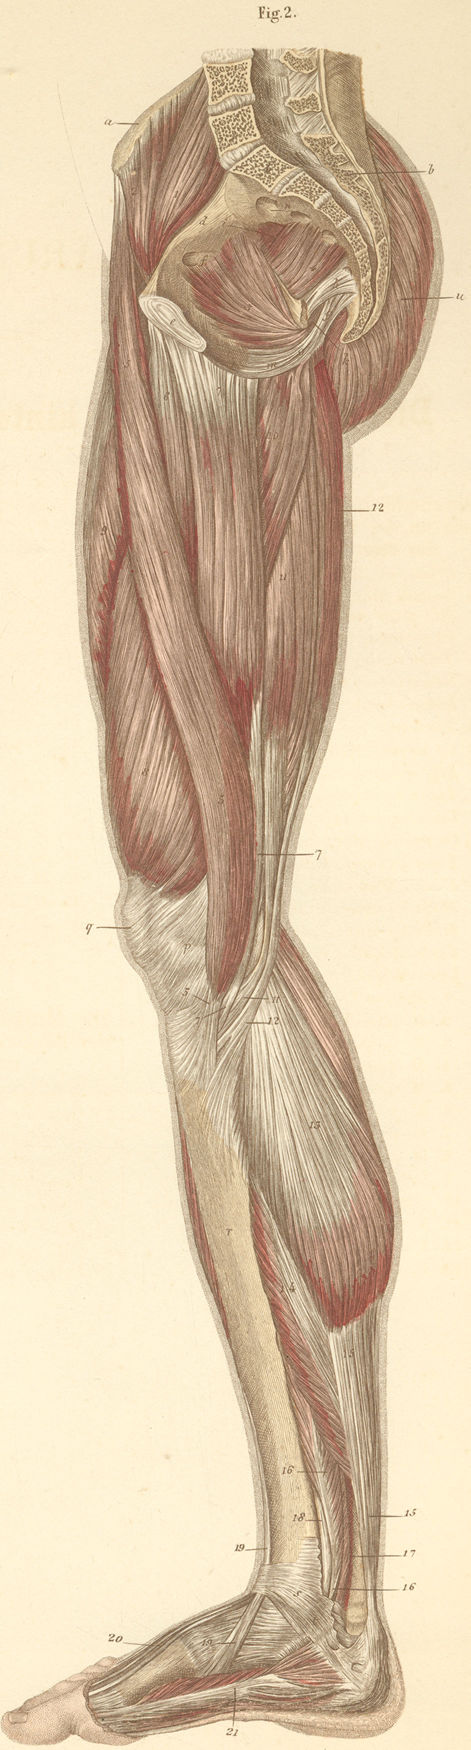 Anatomy Atlases: Atlas of Human Anatomy: Plate 15: Figure 2